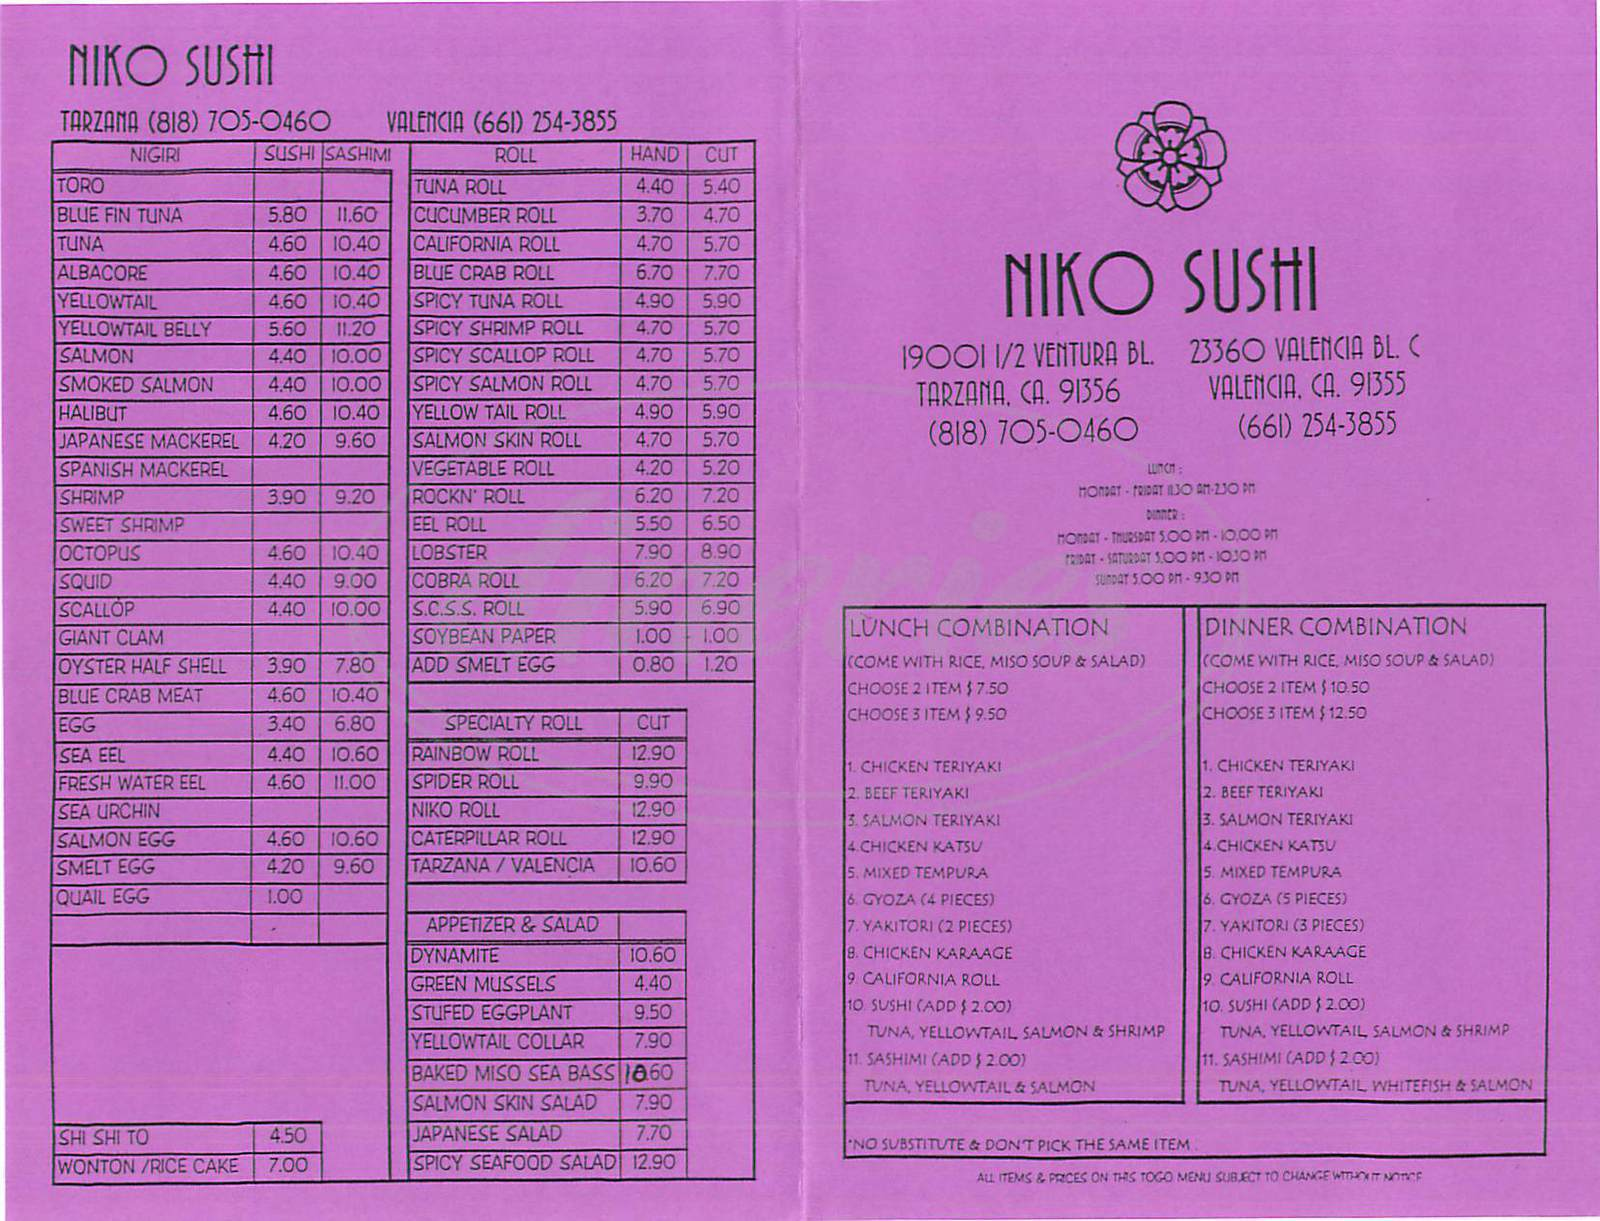 menu for Niko Sushi